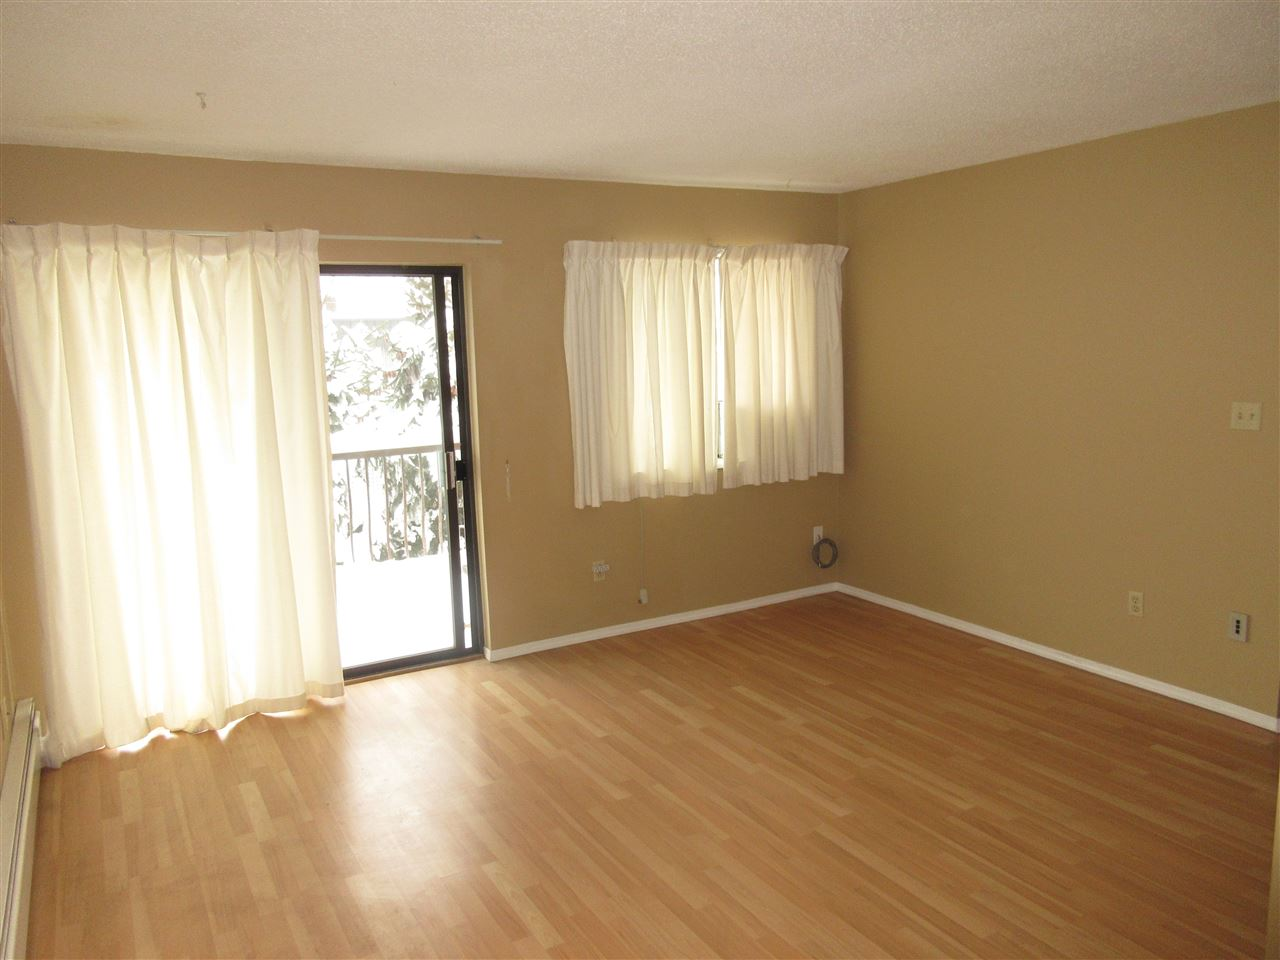 "Photo 4: 309 45749 SPADINA Avenue in Chilliwack: Chilliwack W Young-Well Condo for sale in ""CHILLIWACK GARDENS"" : MLS(r) # R2137266"